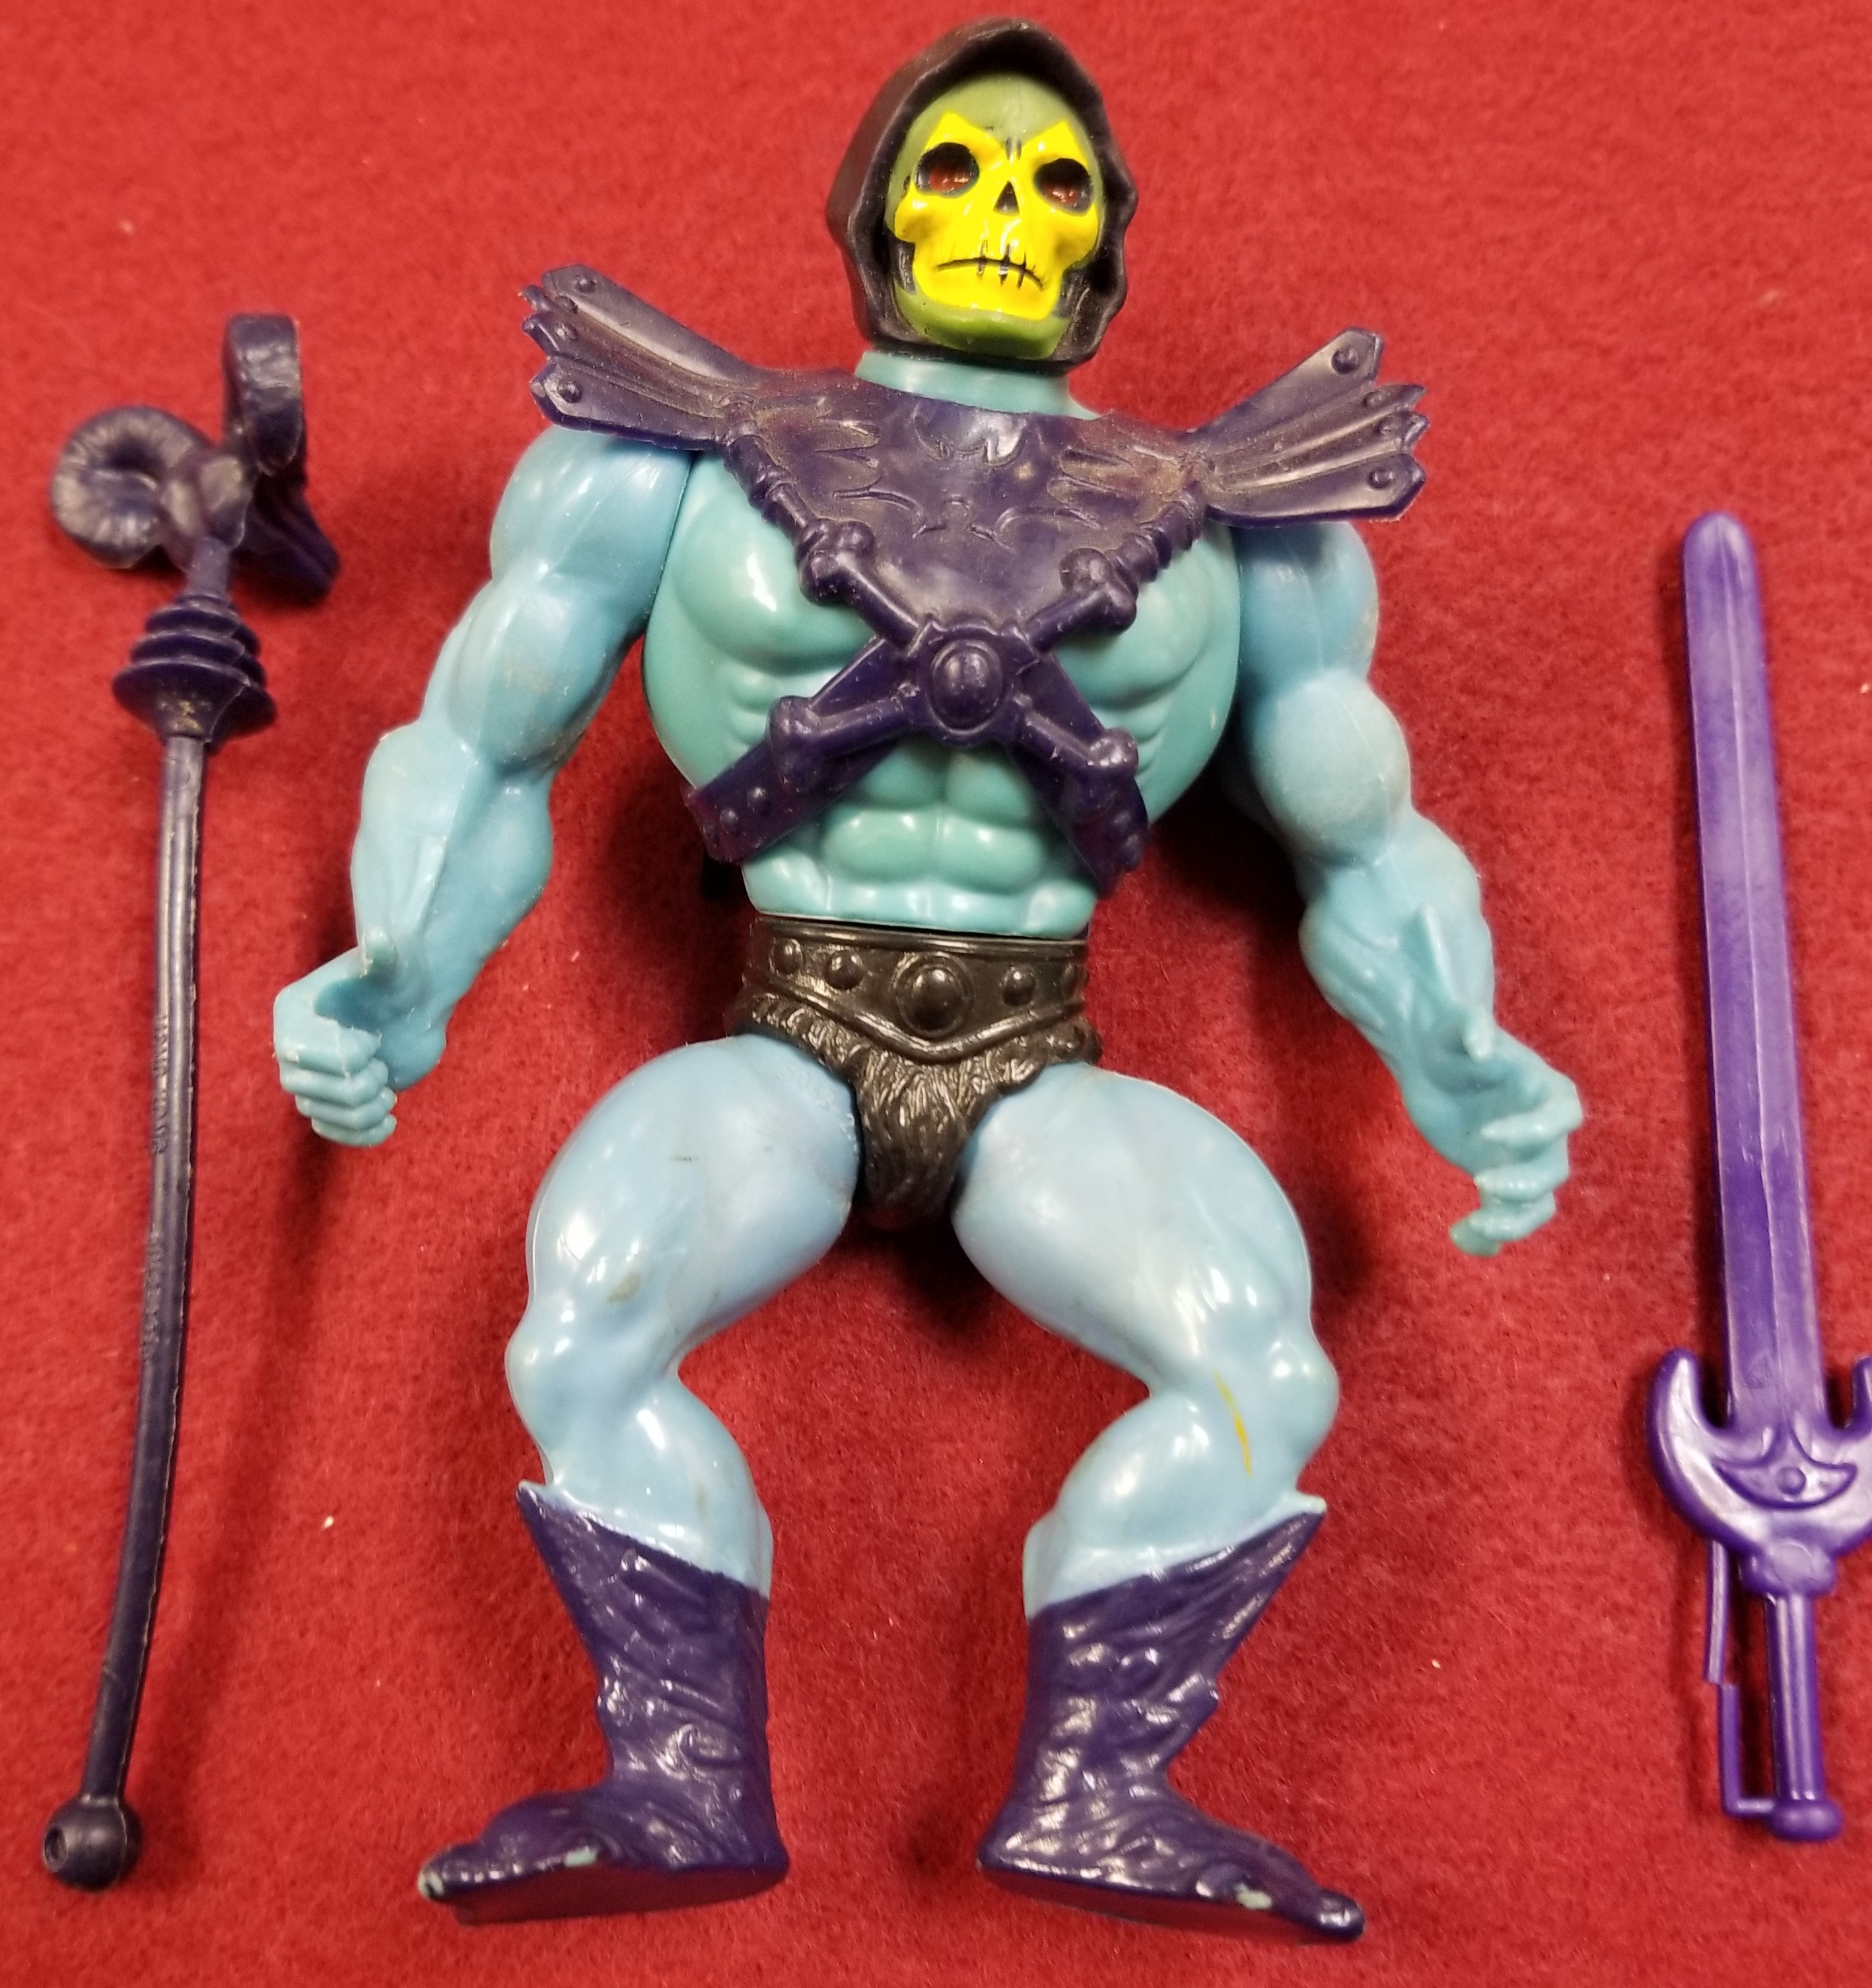 MASTERS OF THE UNIVERSE CLASSIC FIGURES - SKELETOR